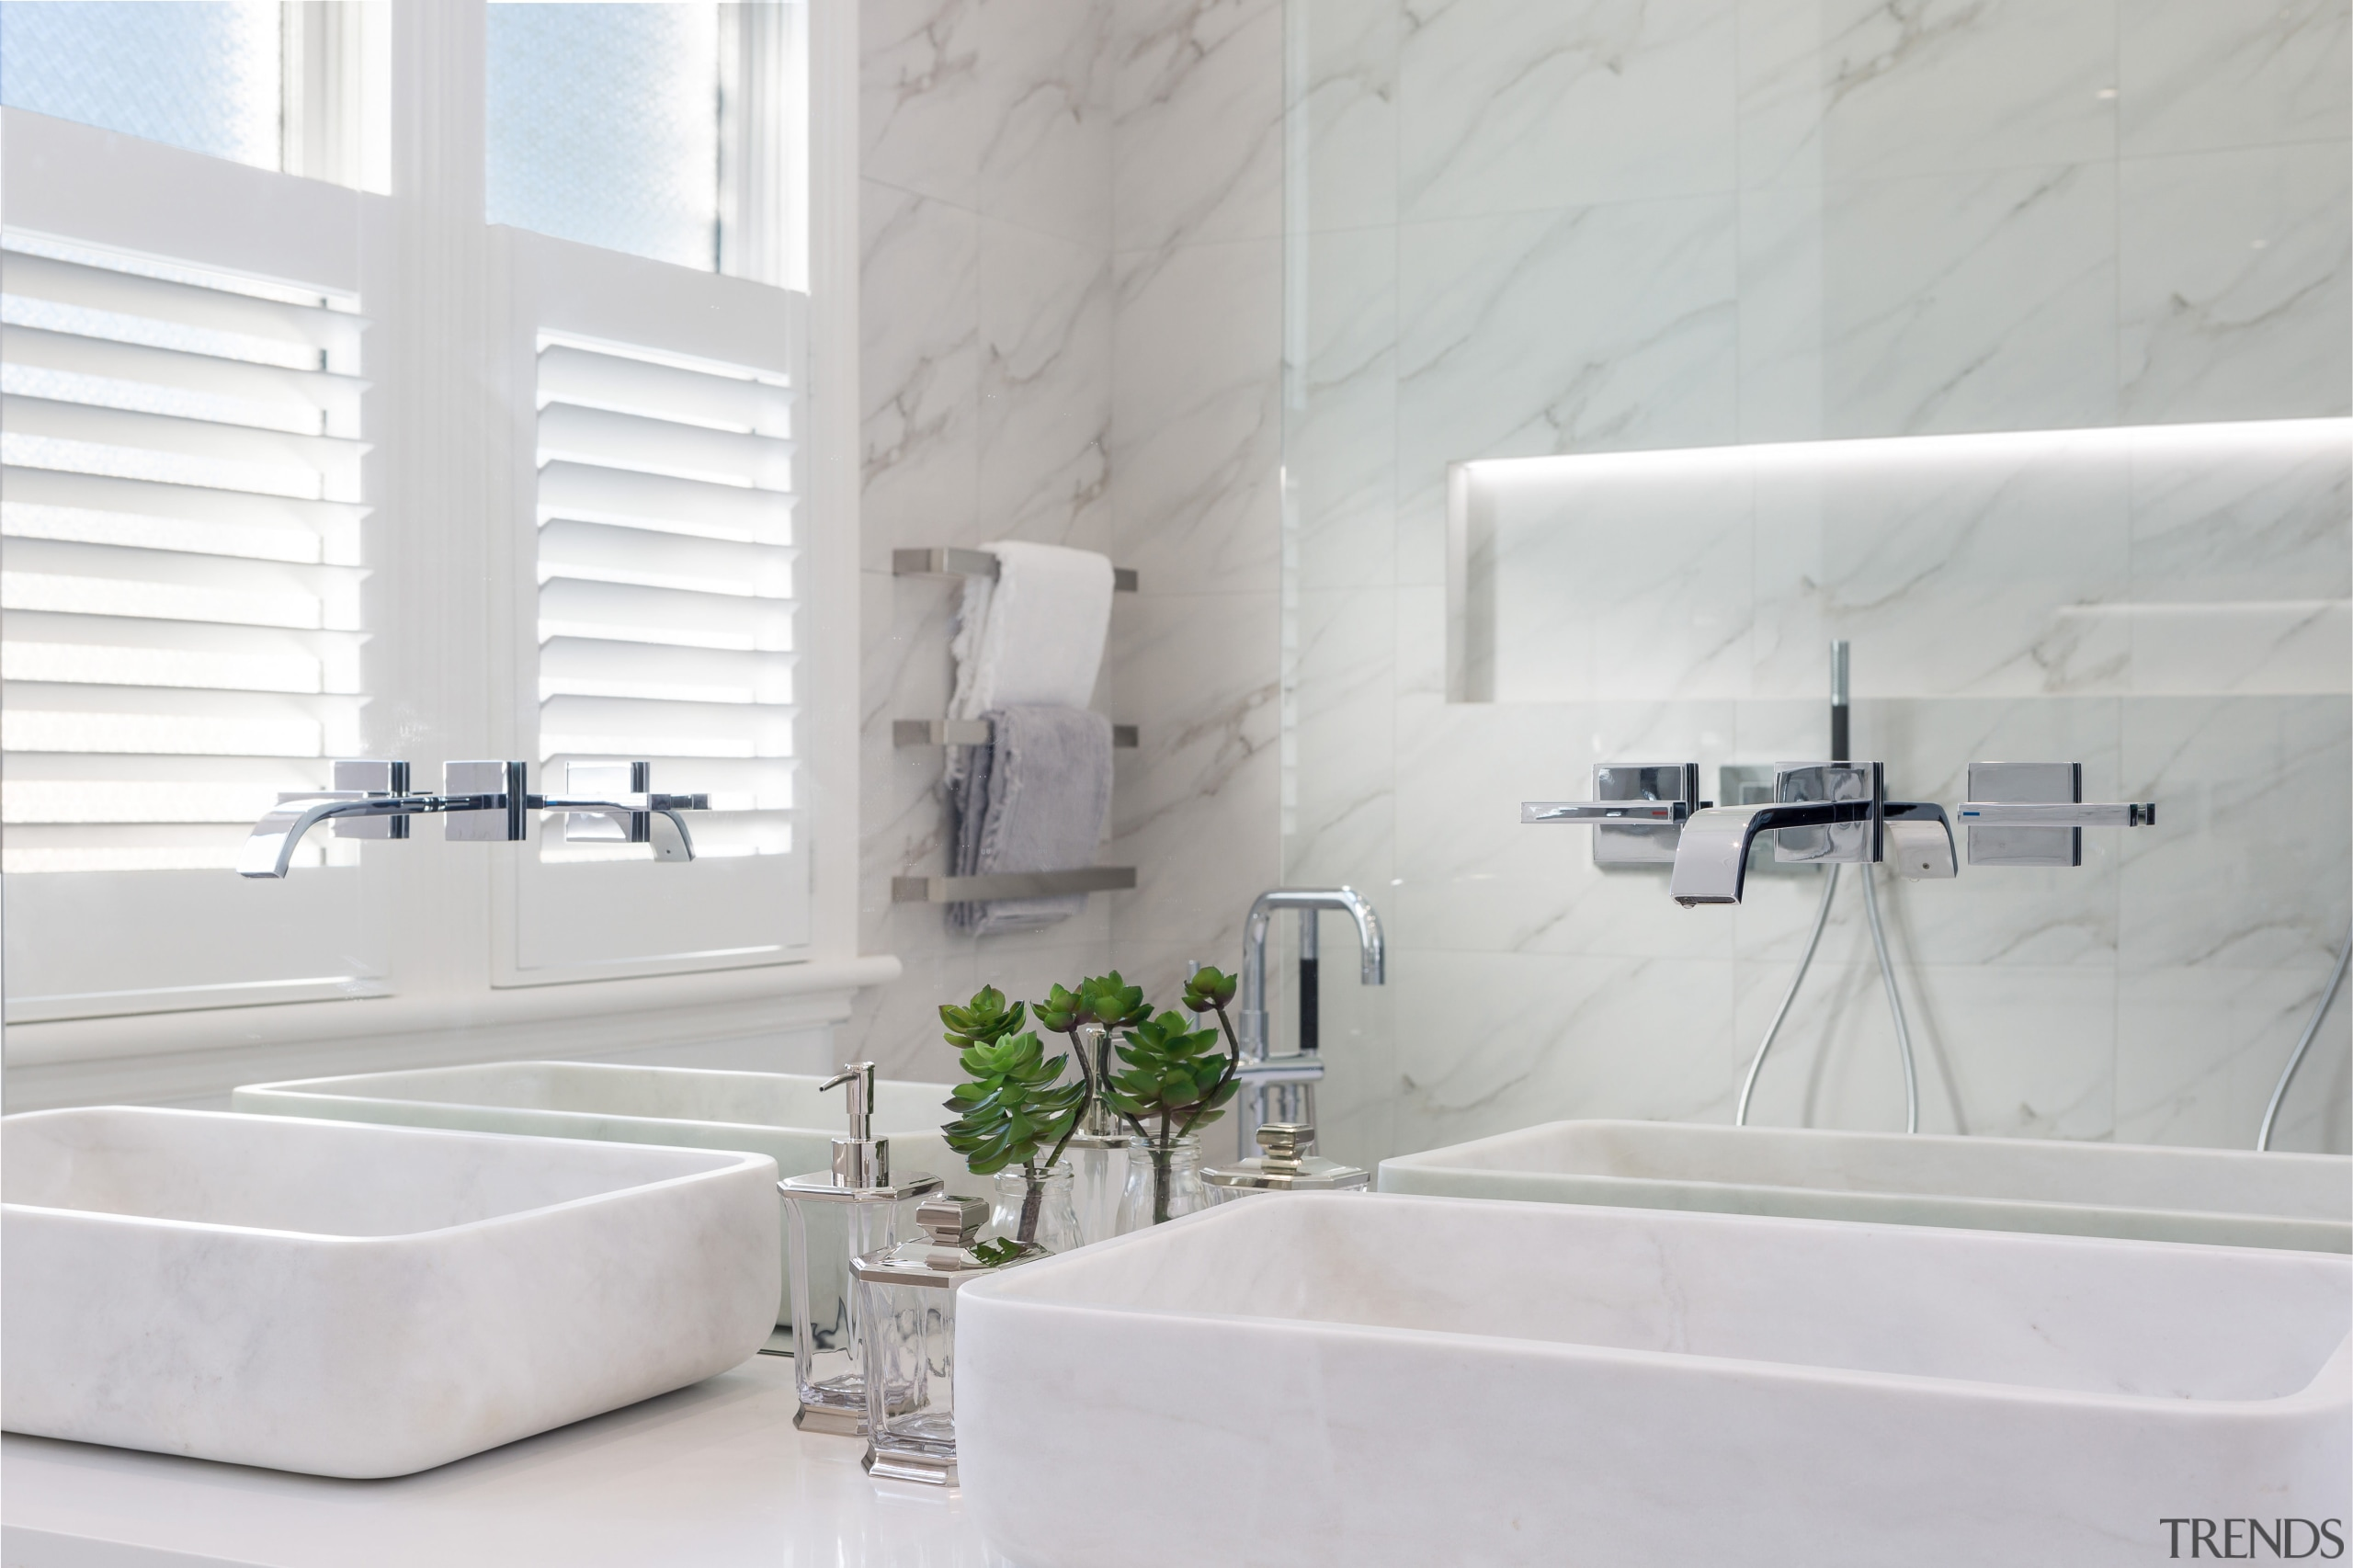 Hand-made marble vanity basins are a feature of bathroom, bathroom sink, floor, interior design, plumbing fixture, product design, property, room, sink, tap, tile, wall, white, gray